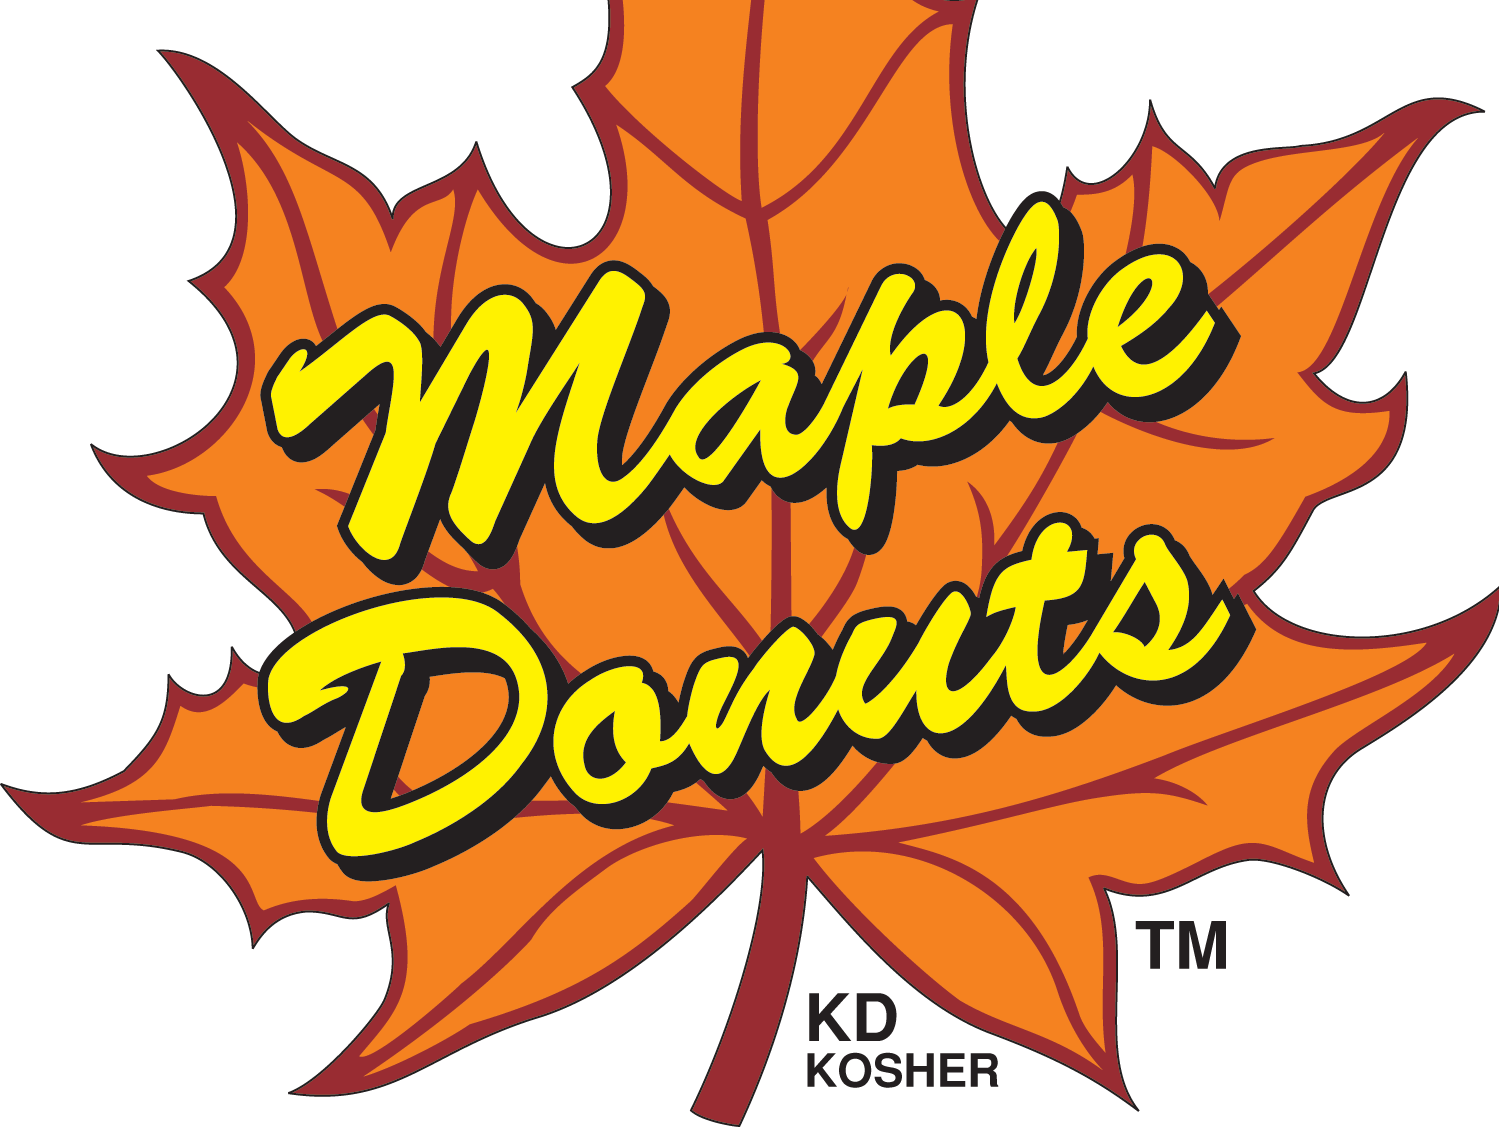 Valid at all Maple Donut locations this month!